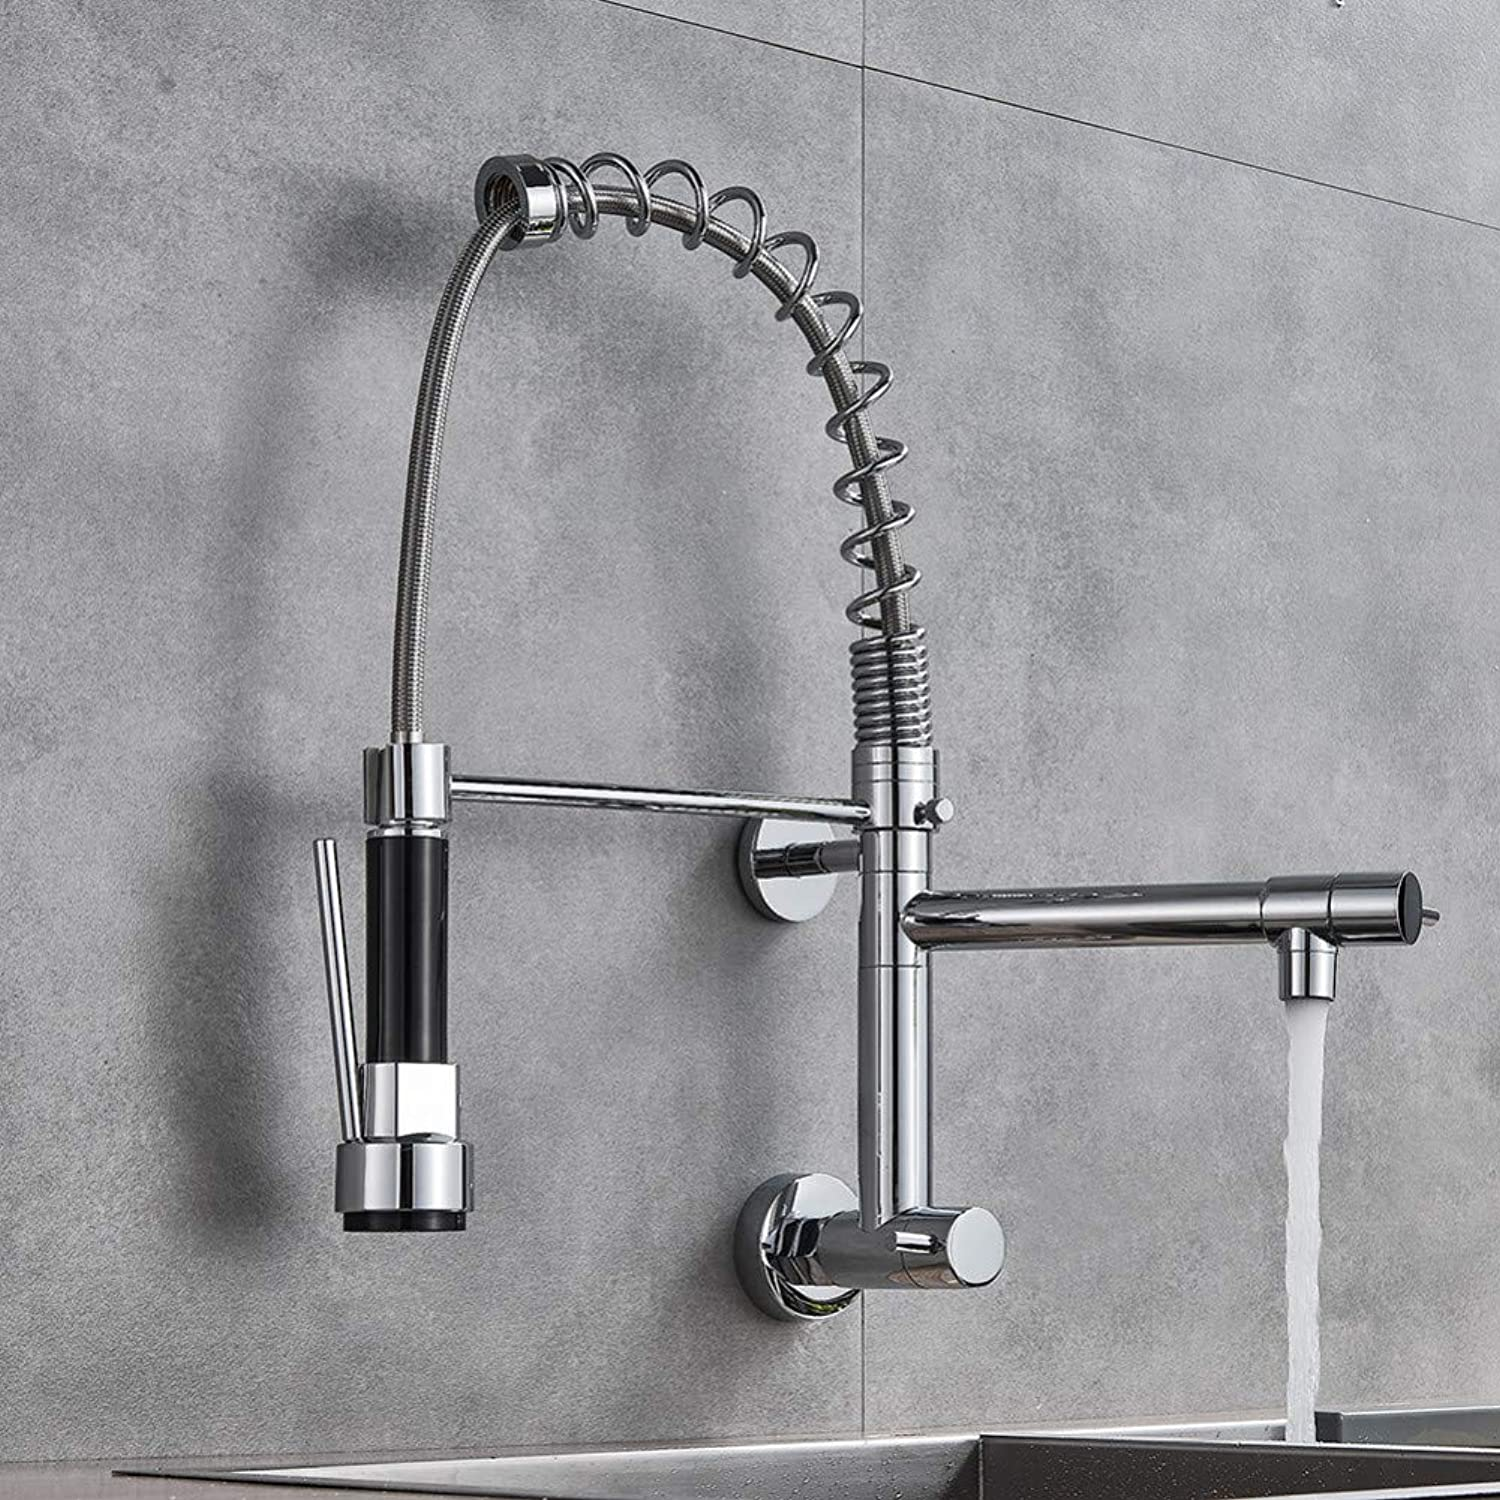 YHSGY Kitchen Taps Chrome Brass Kitchen Faucet Vessel Sink Mixer Tap Spring Dual Swivel Spouts Sink Mixer Bathroom Faucets Wall Mounted Tap